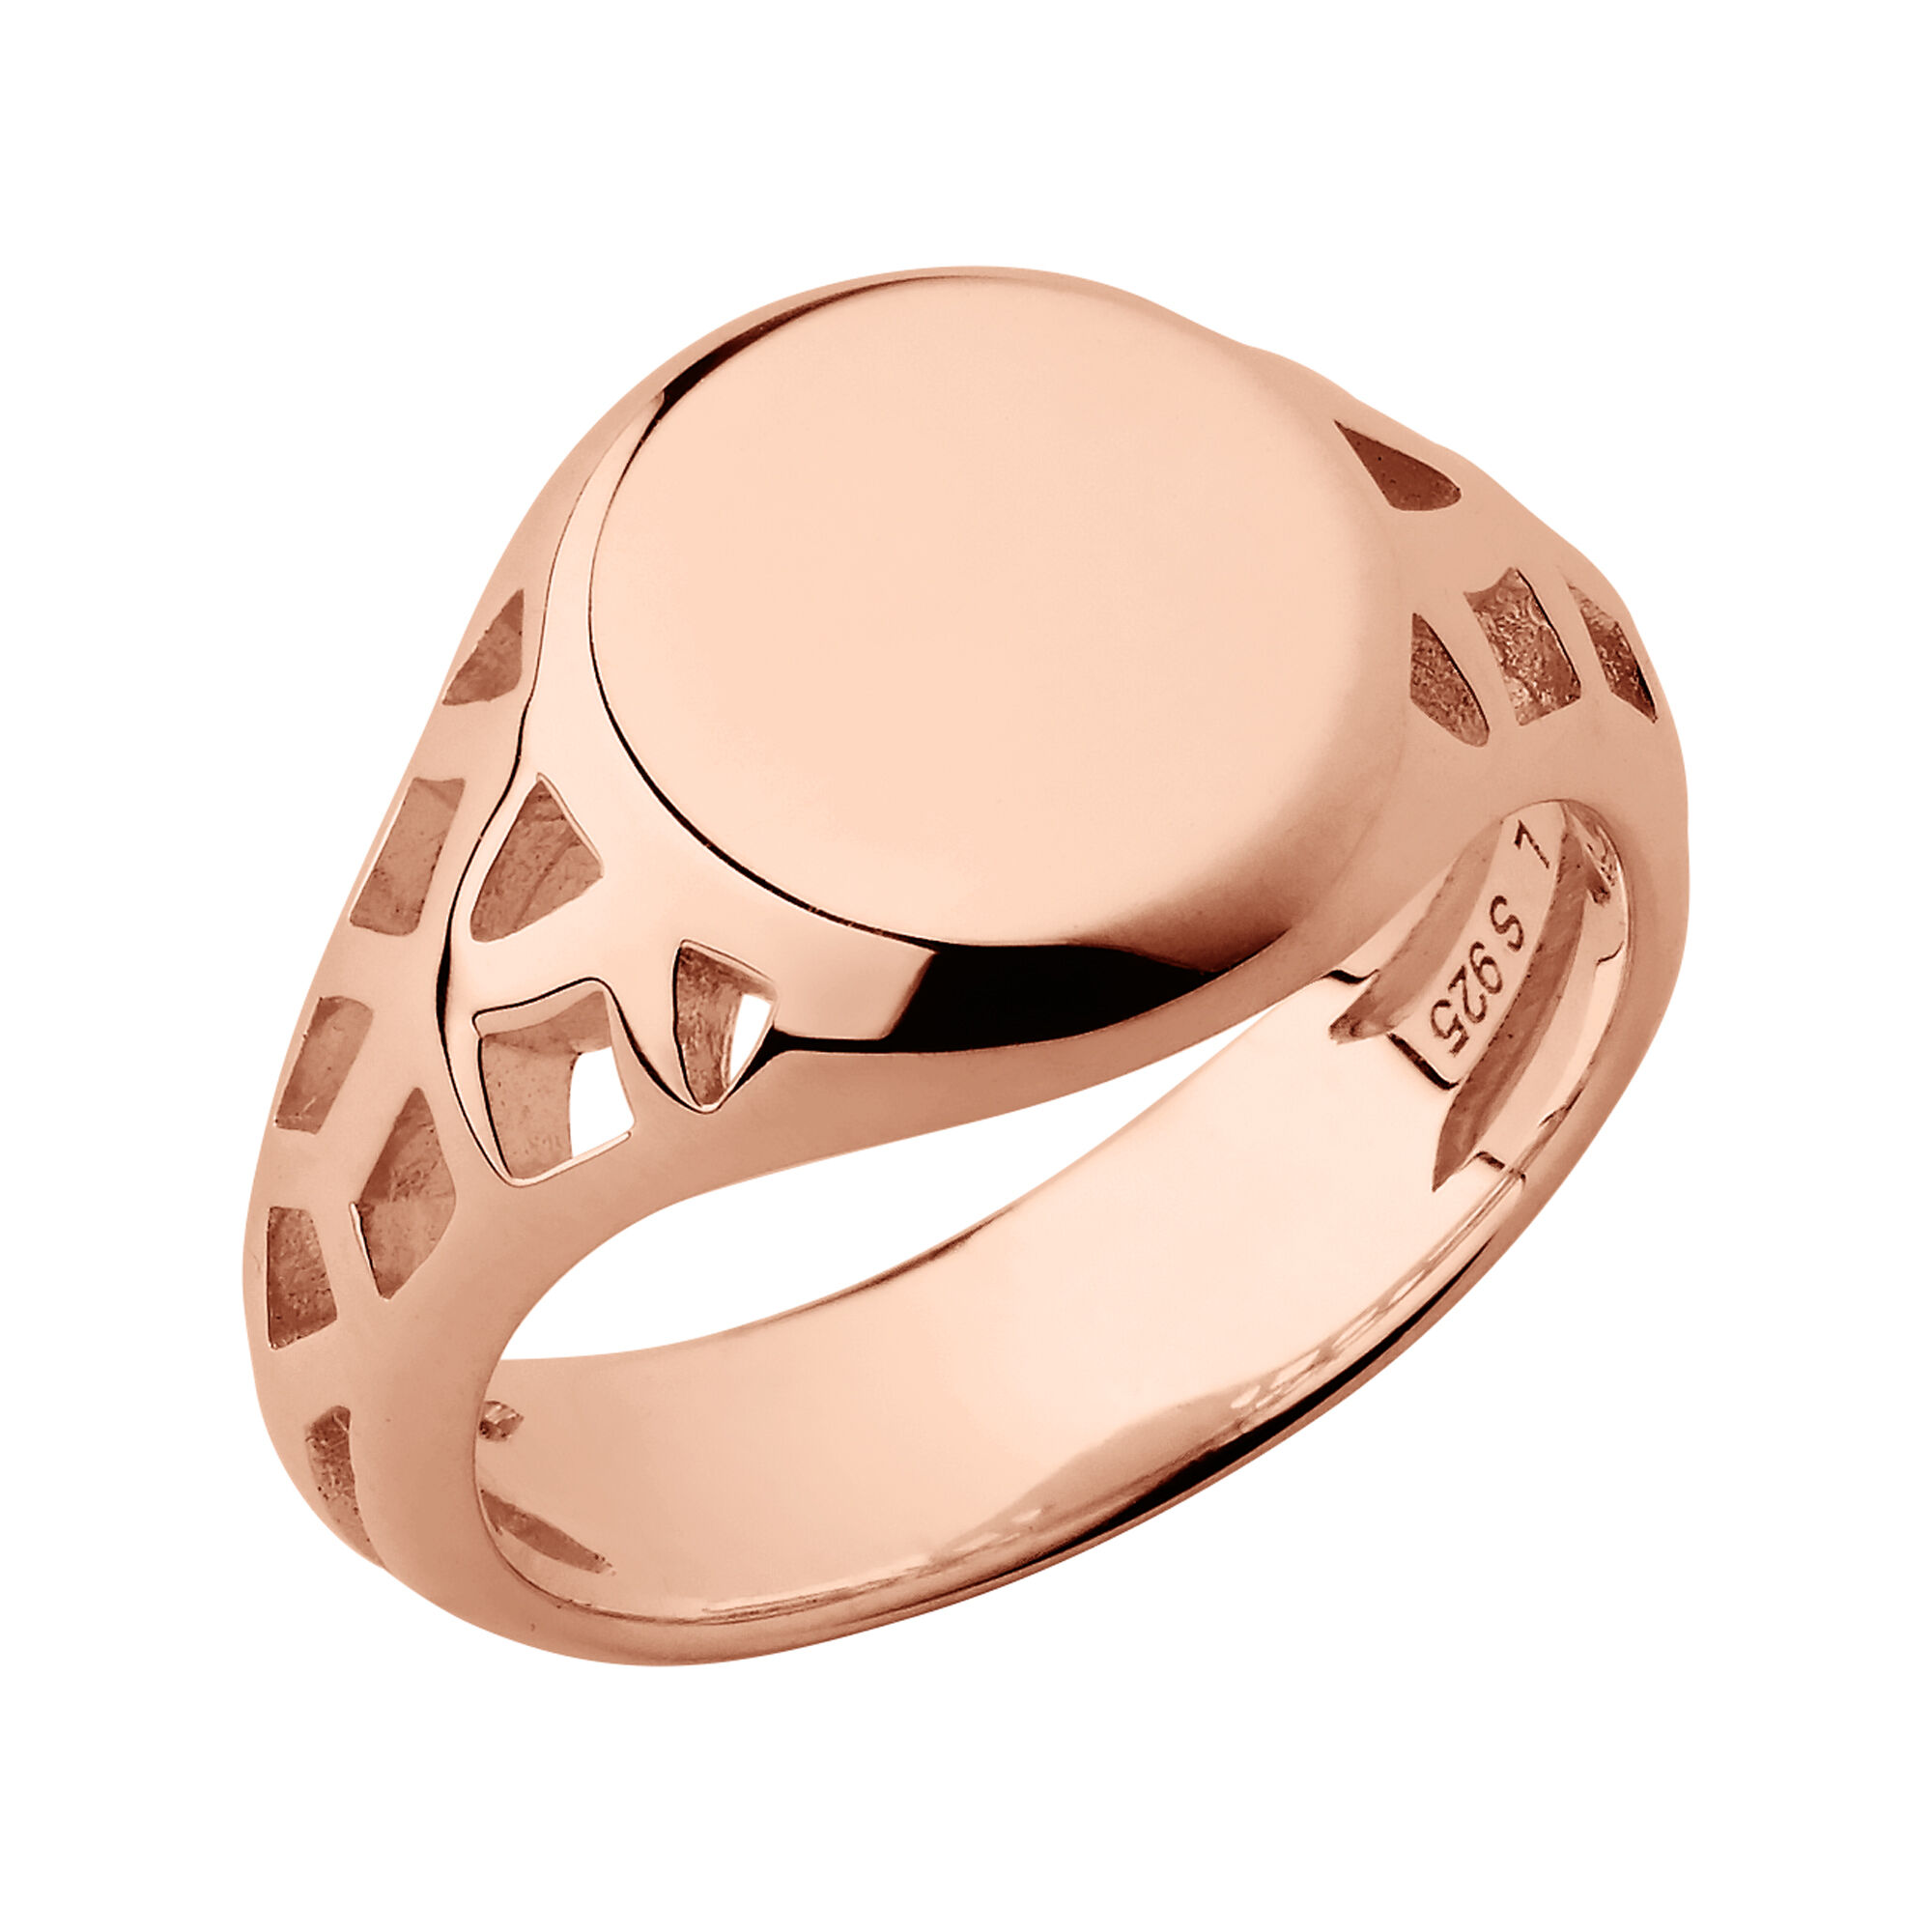 s jewelry a styles that band smauel news grooms mixed pratt groom wedding the for different metal brushed inside gold express ring men rings man style